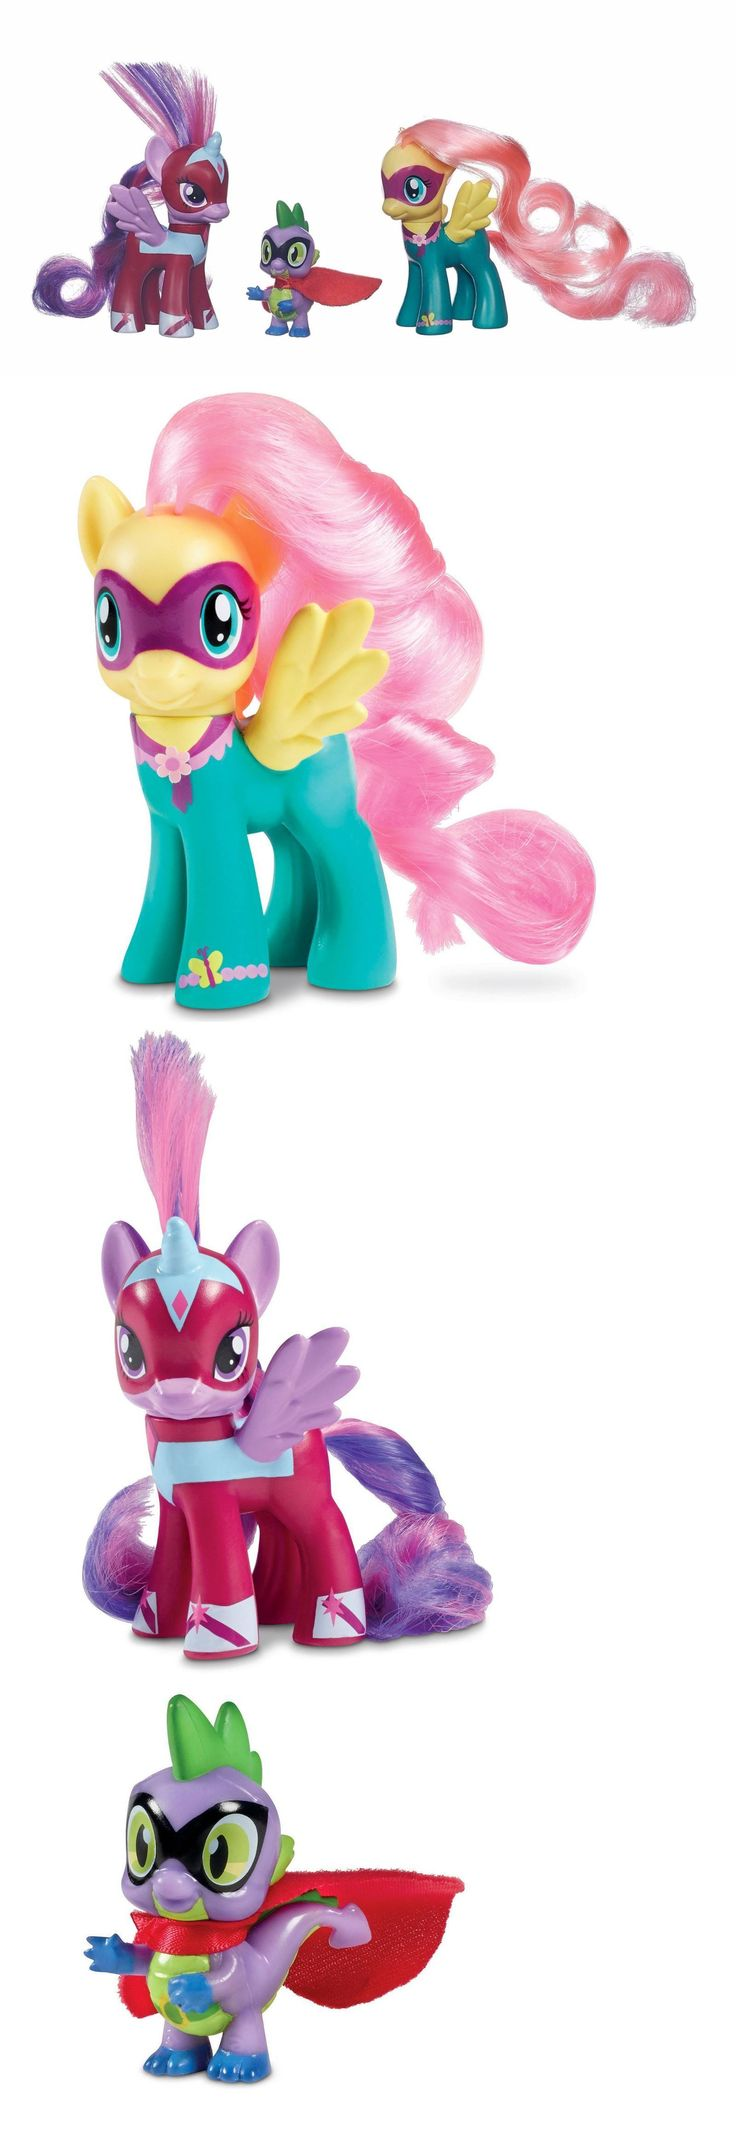 1990-Now 47228: My Little Pony Toy 3Pk With Spike The Dragon Figure Playset New -> BUY IT NOW ONLY: $30.87 on eBay!